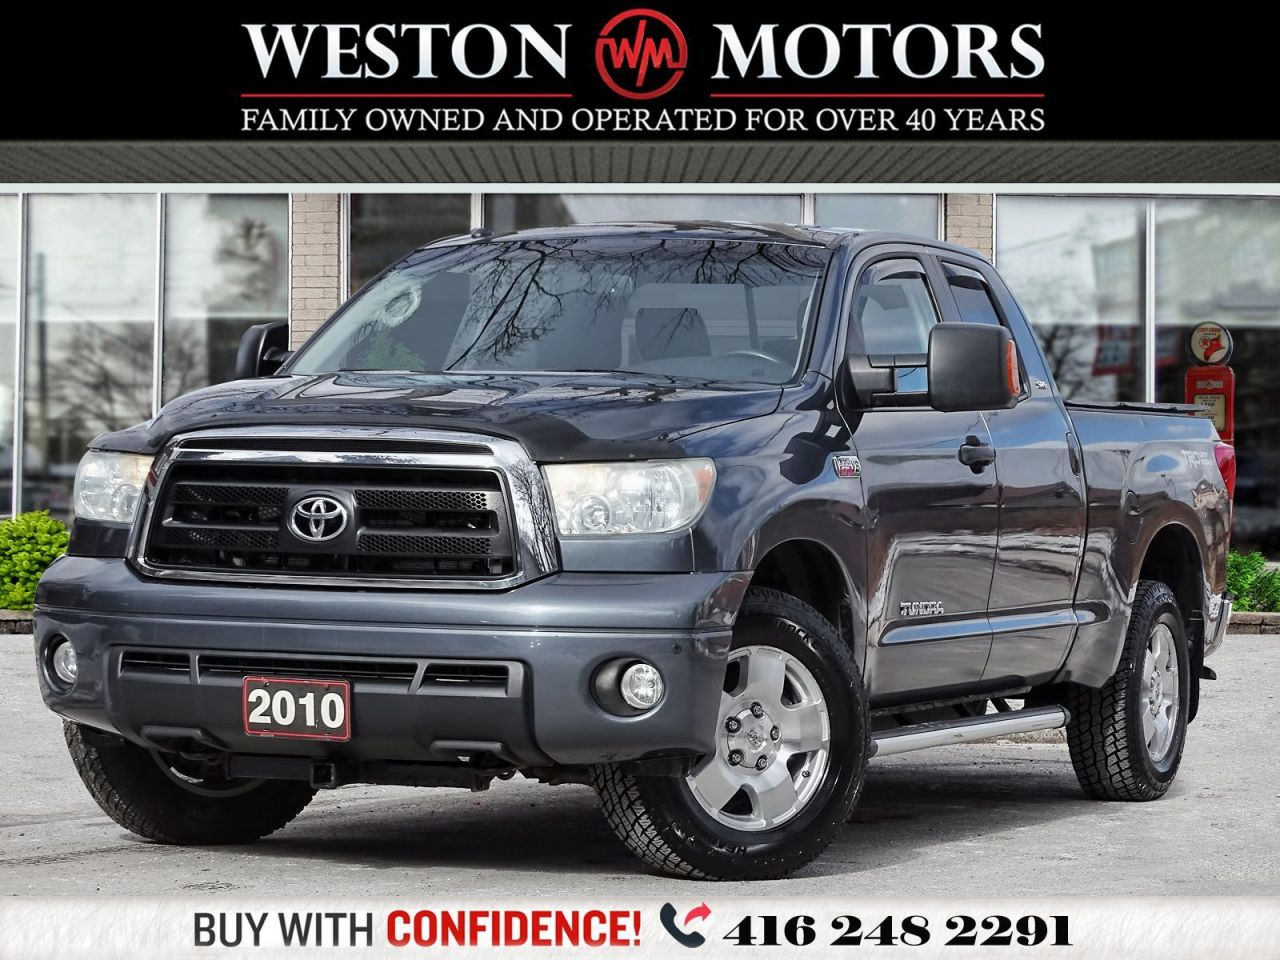 2010 Toyota Tundra SR5*TRD*V8*4X4*CREWCAB*PICTURES COMING SOON!*